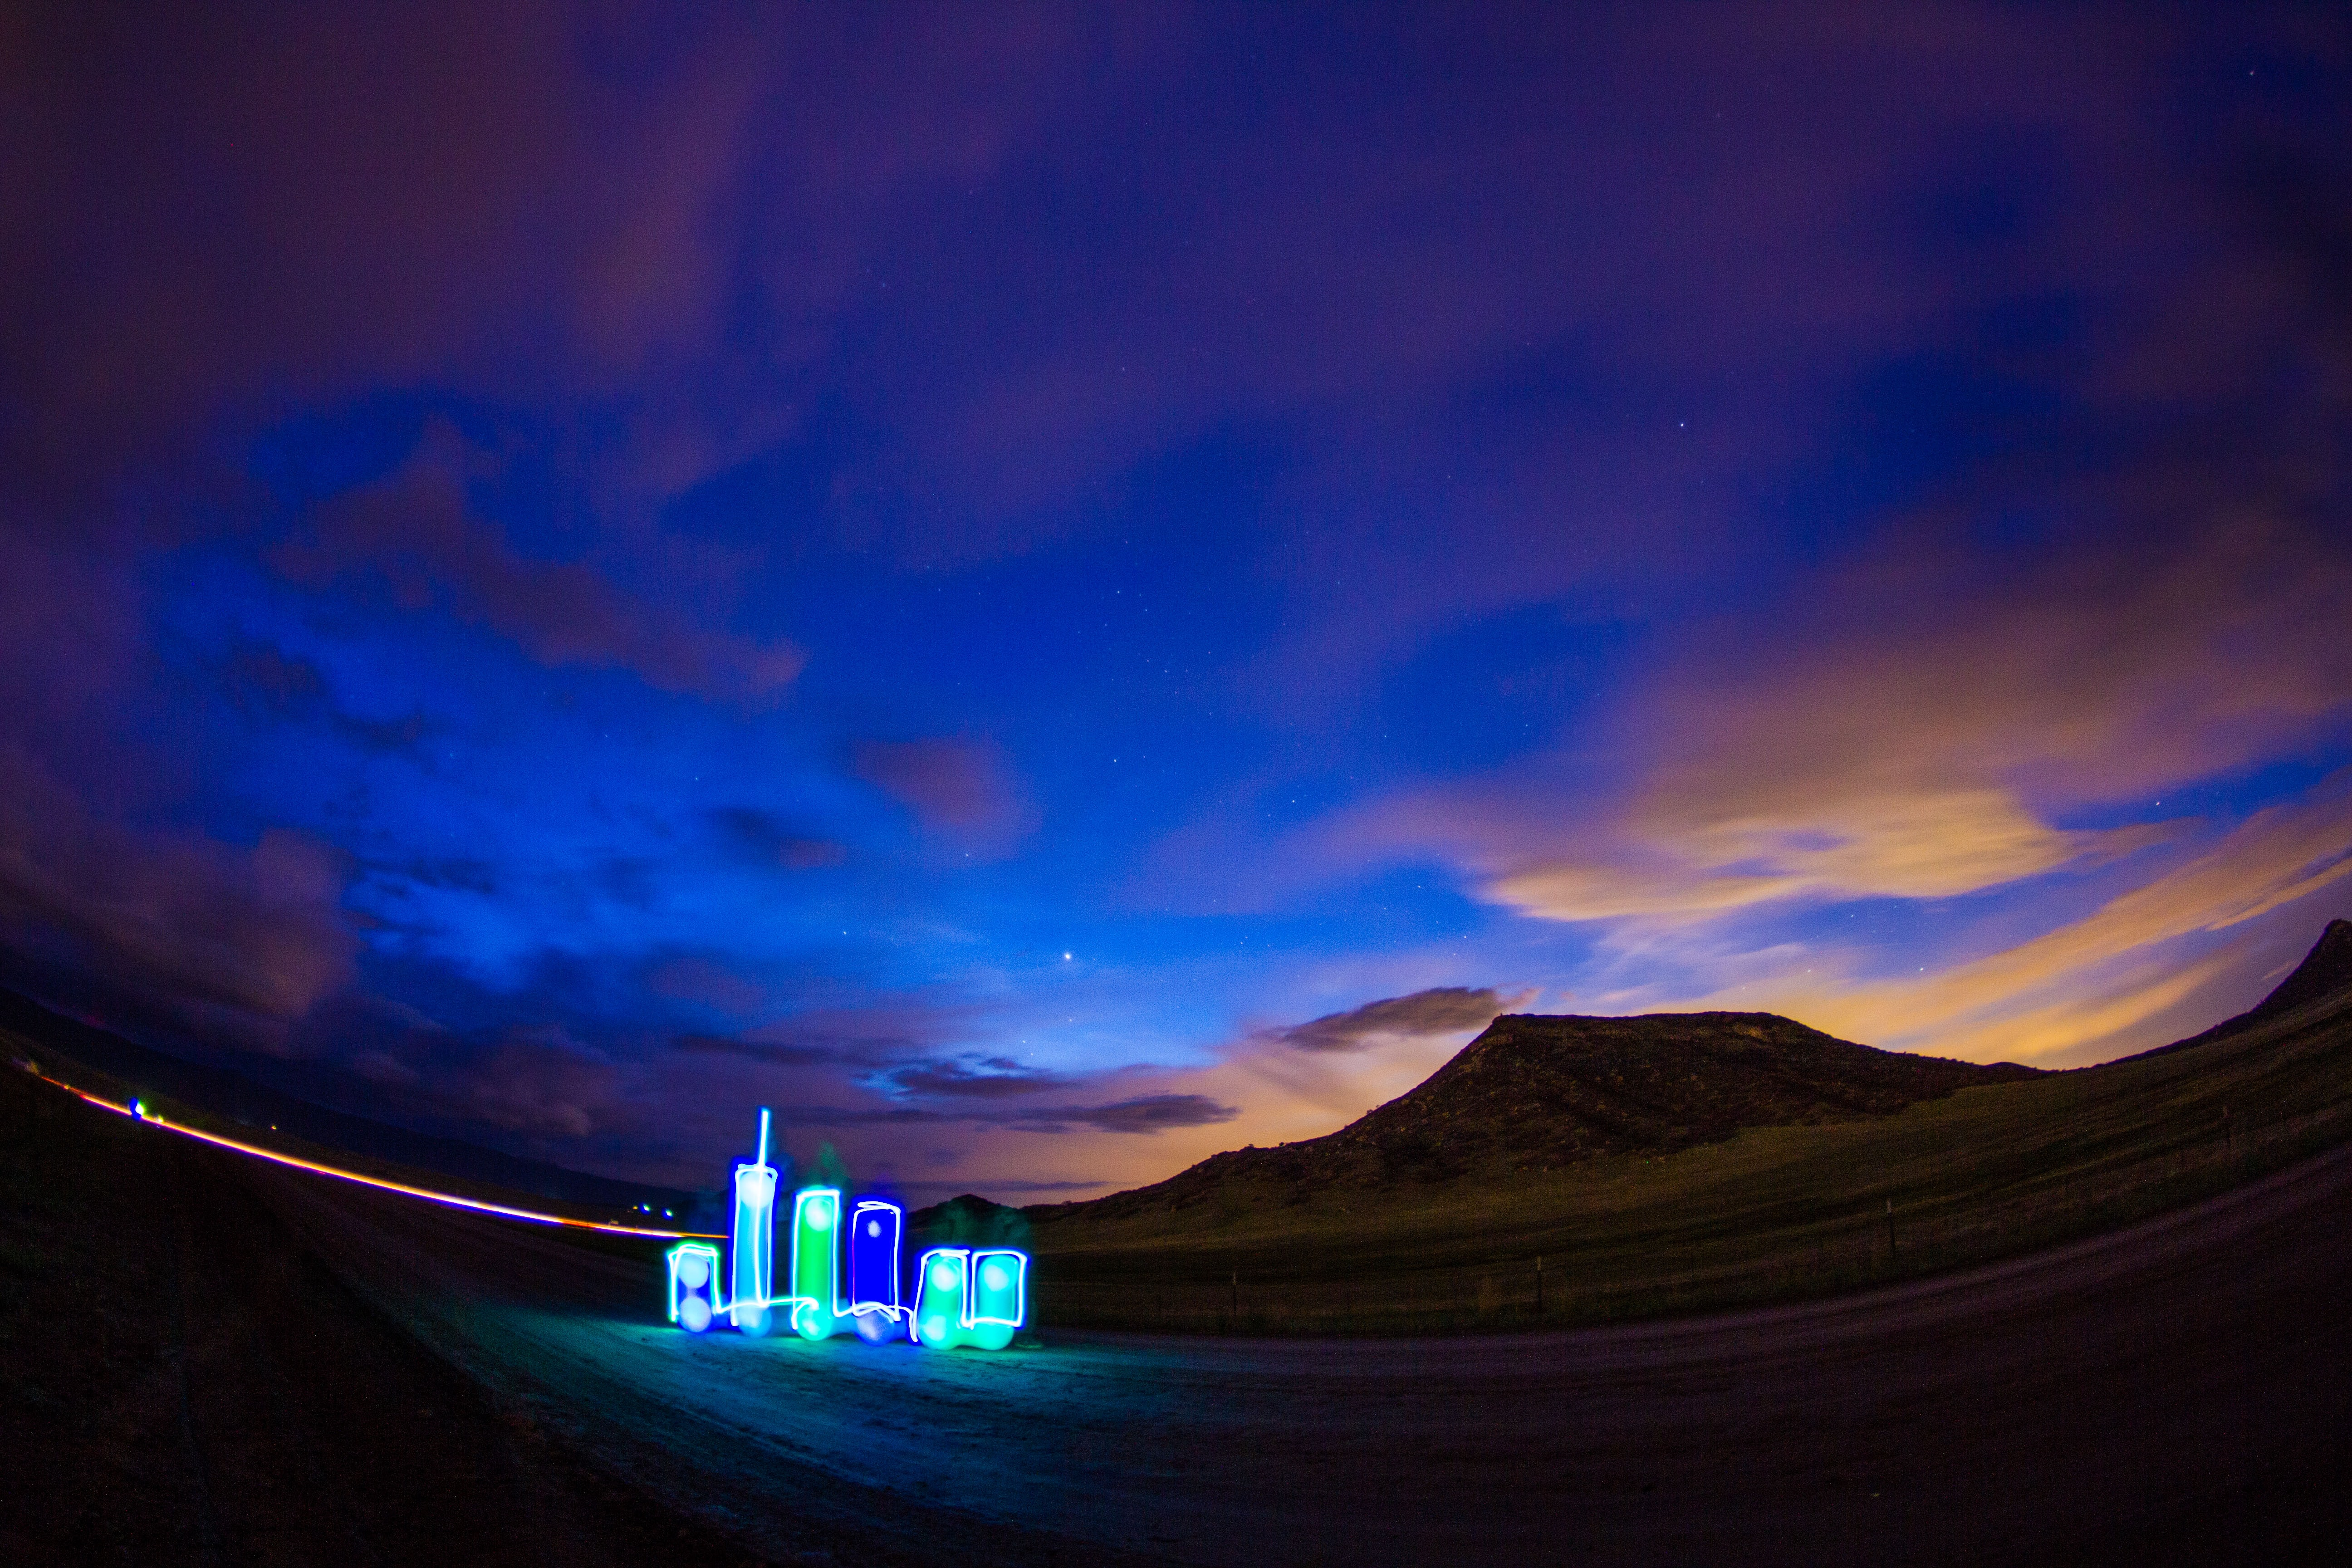 Long exposure and wide angle landscape in Denver at sunset with a highway and lights.